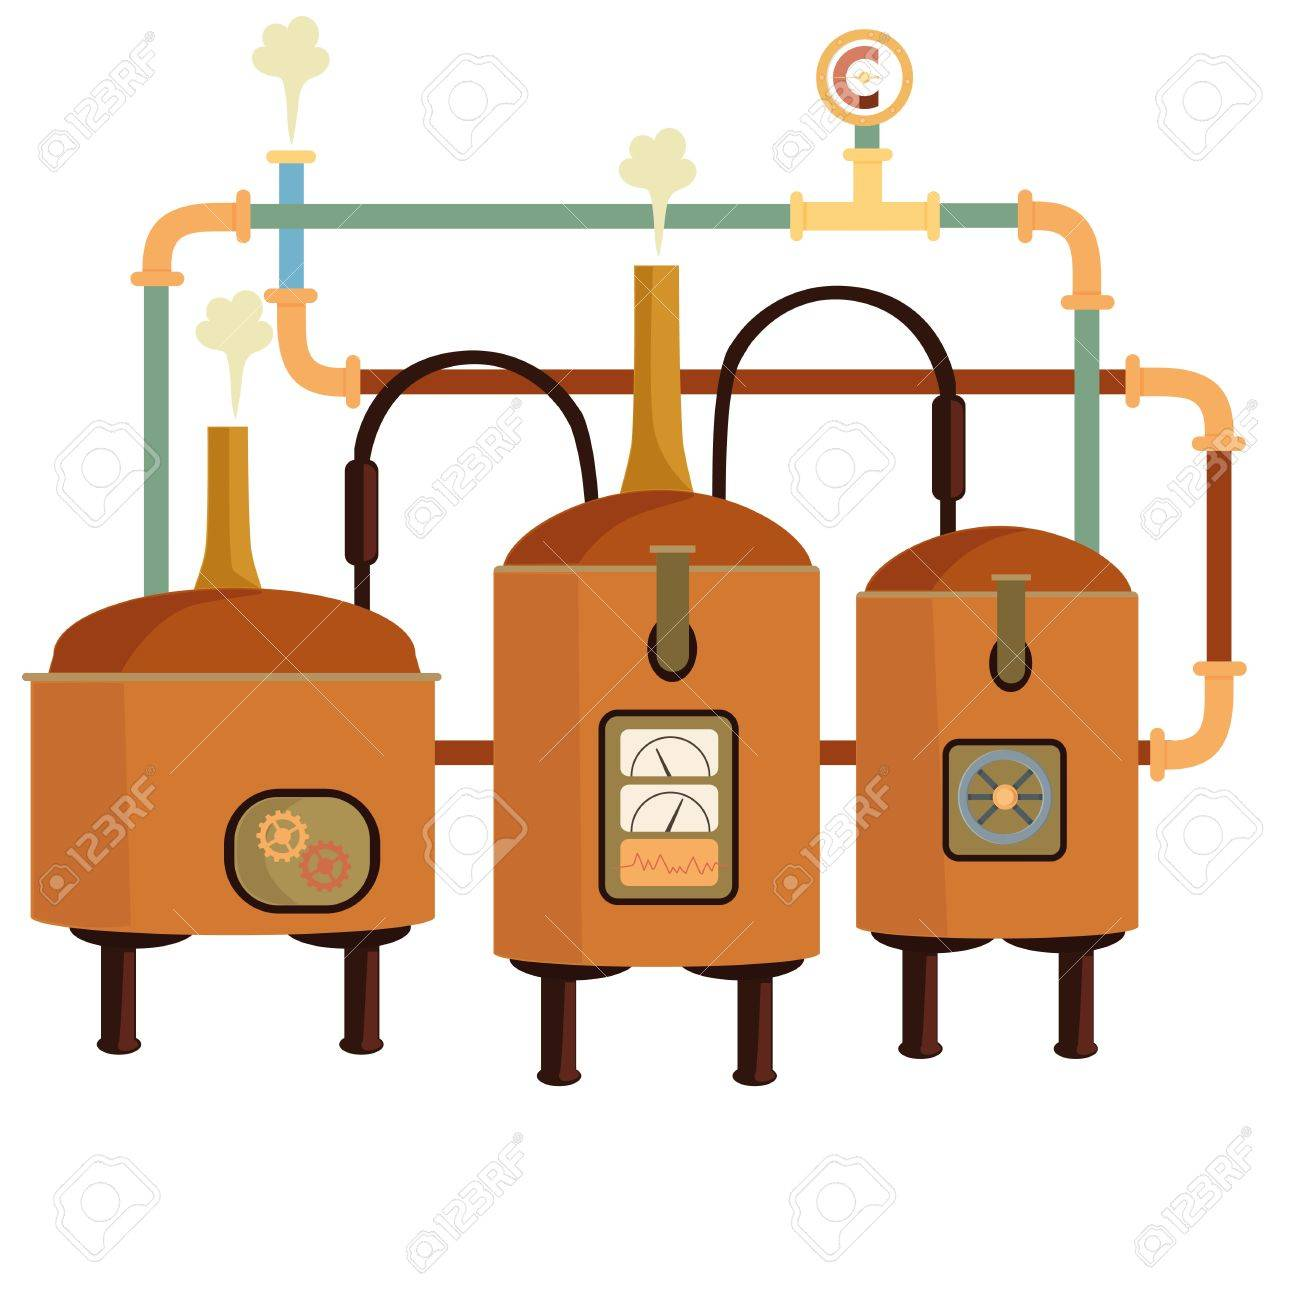 Brewery machine. Tanks with beer. - 61901453